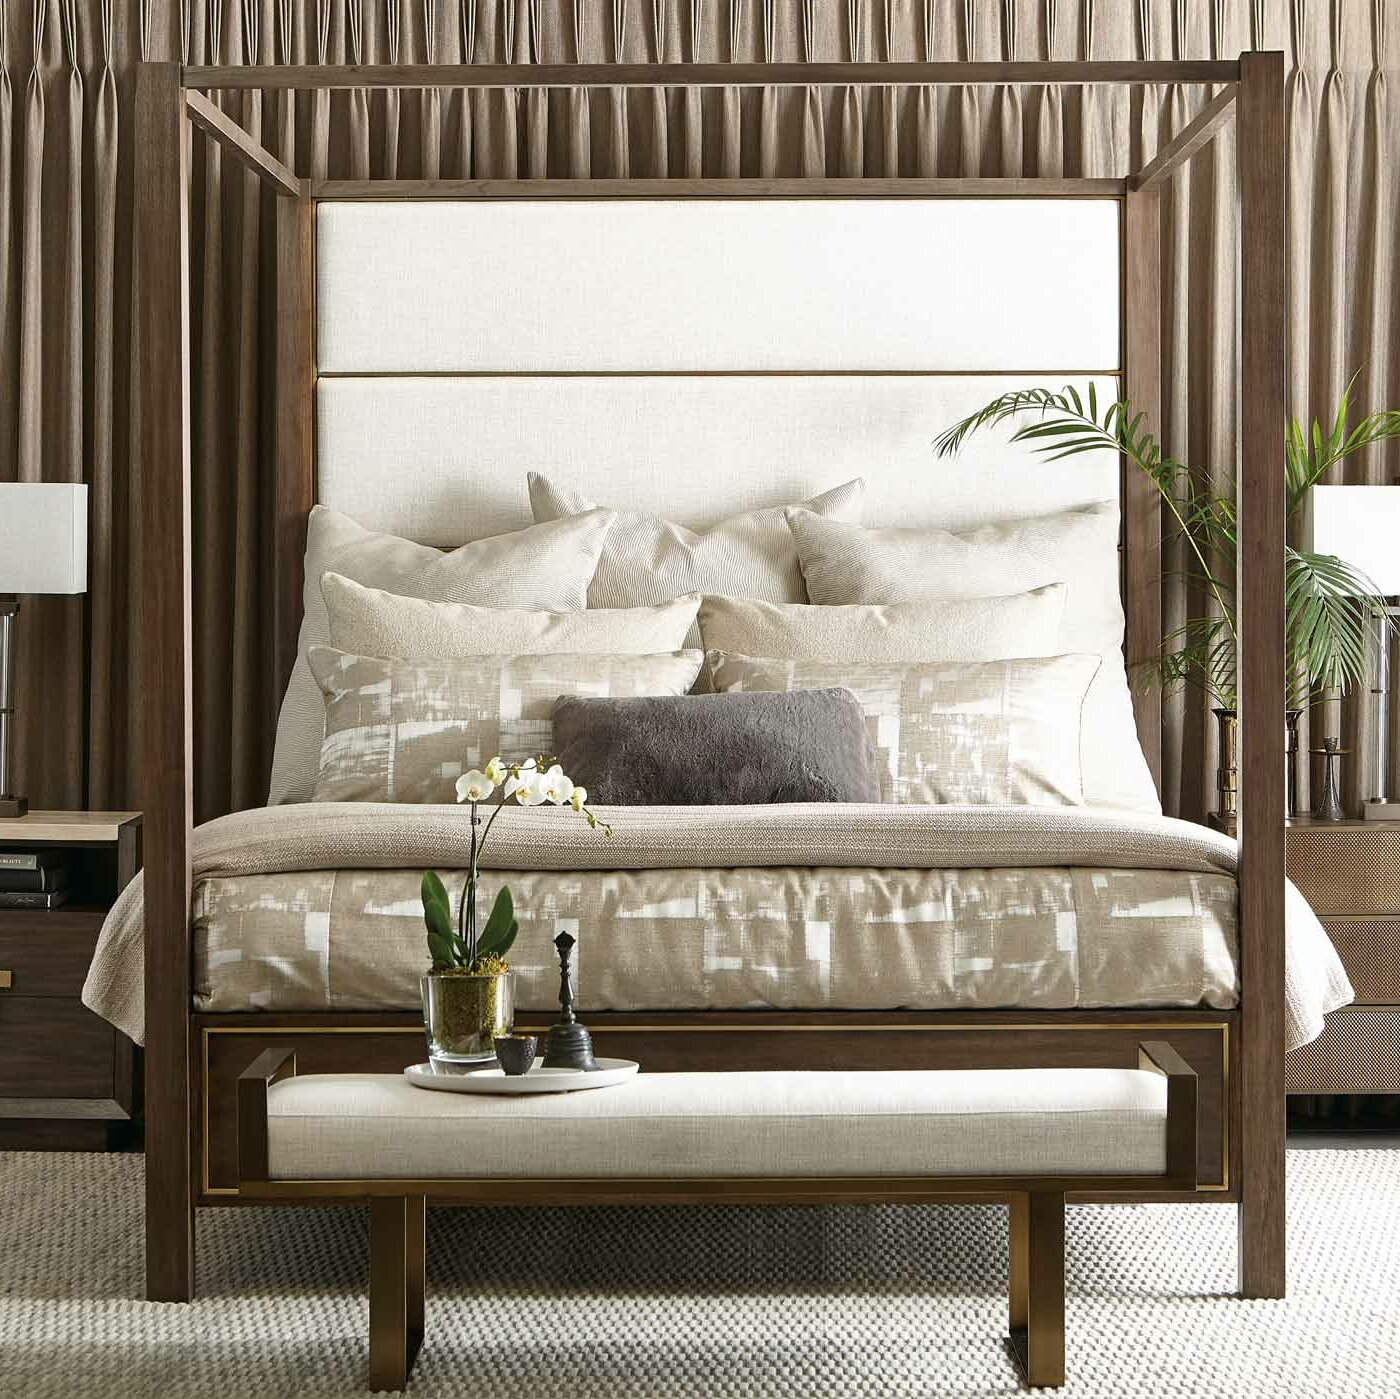 Profile King Canopy Bed